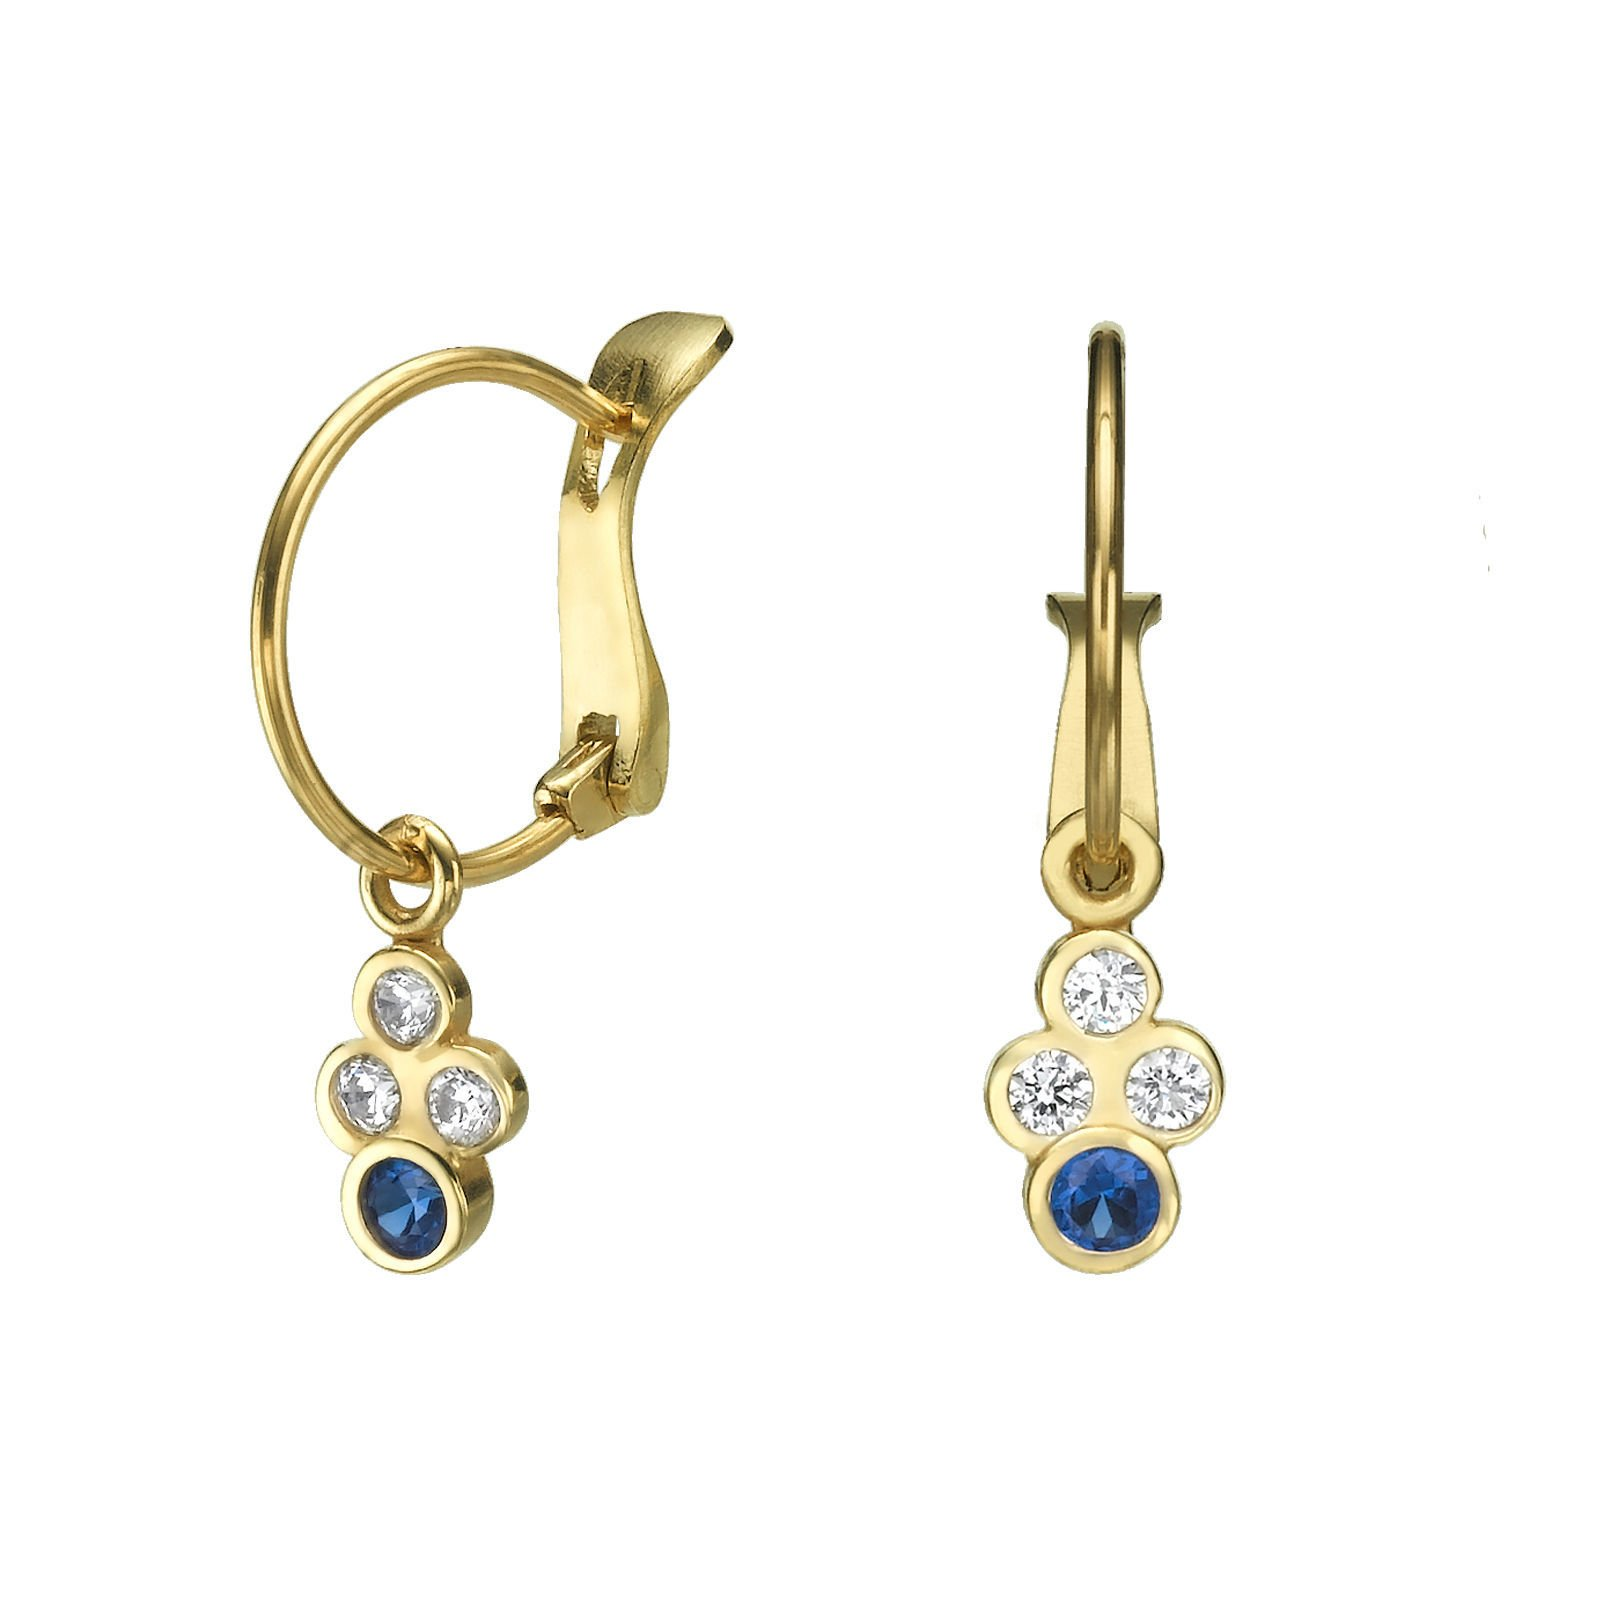 14K Solid Yellow Gold Leverback Earrings Circles Of Liron Teen Girls Kids Children Child Gift Baby